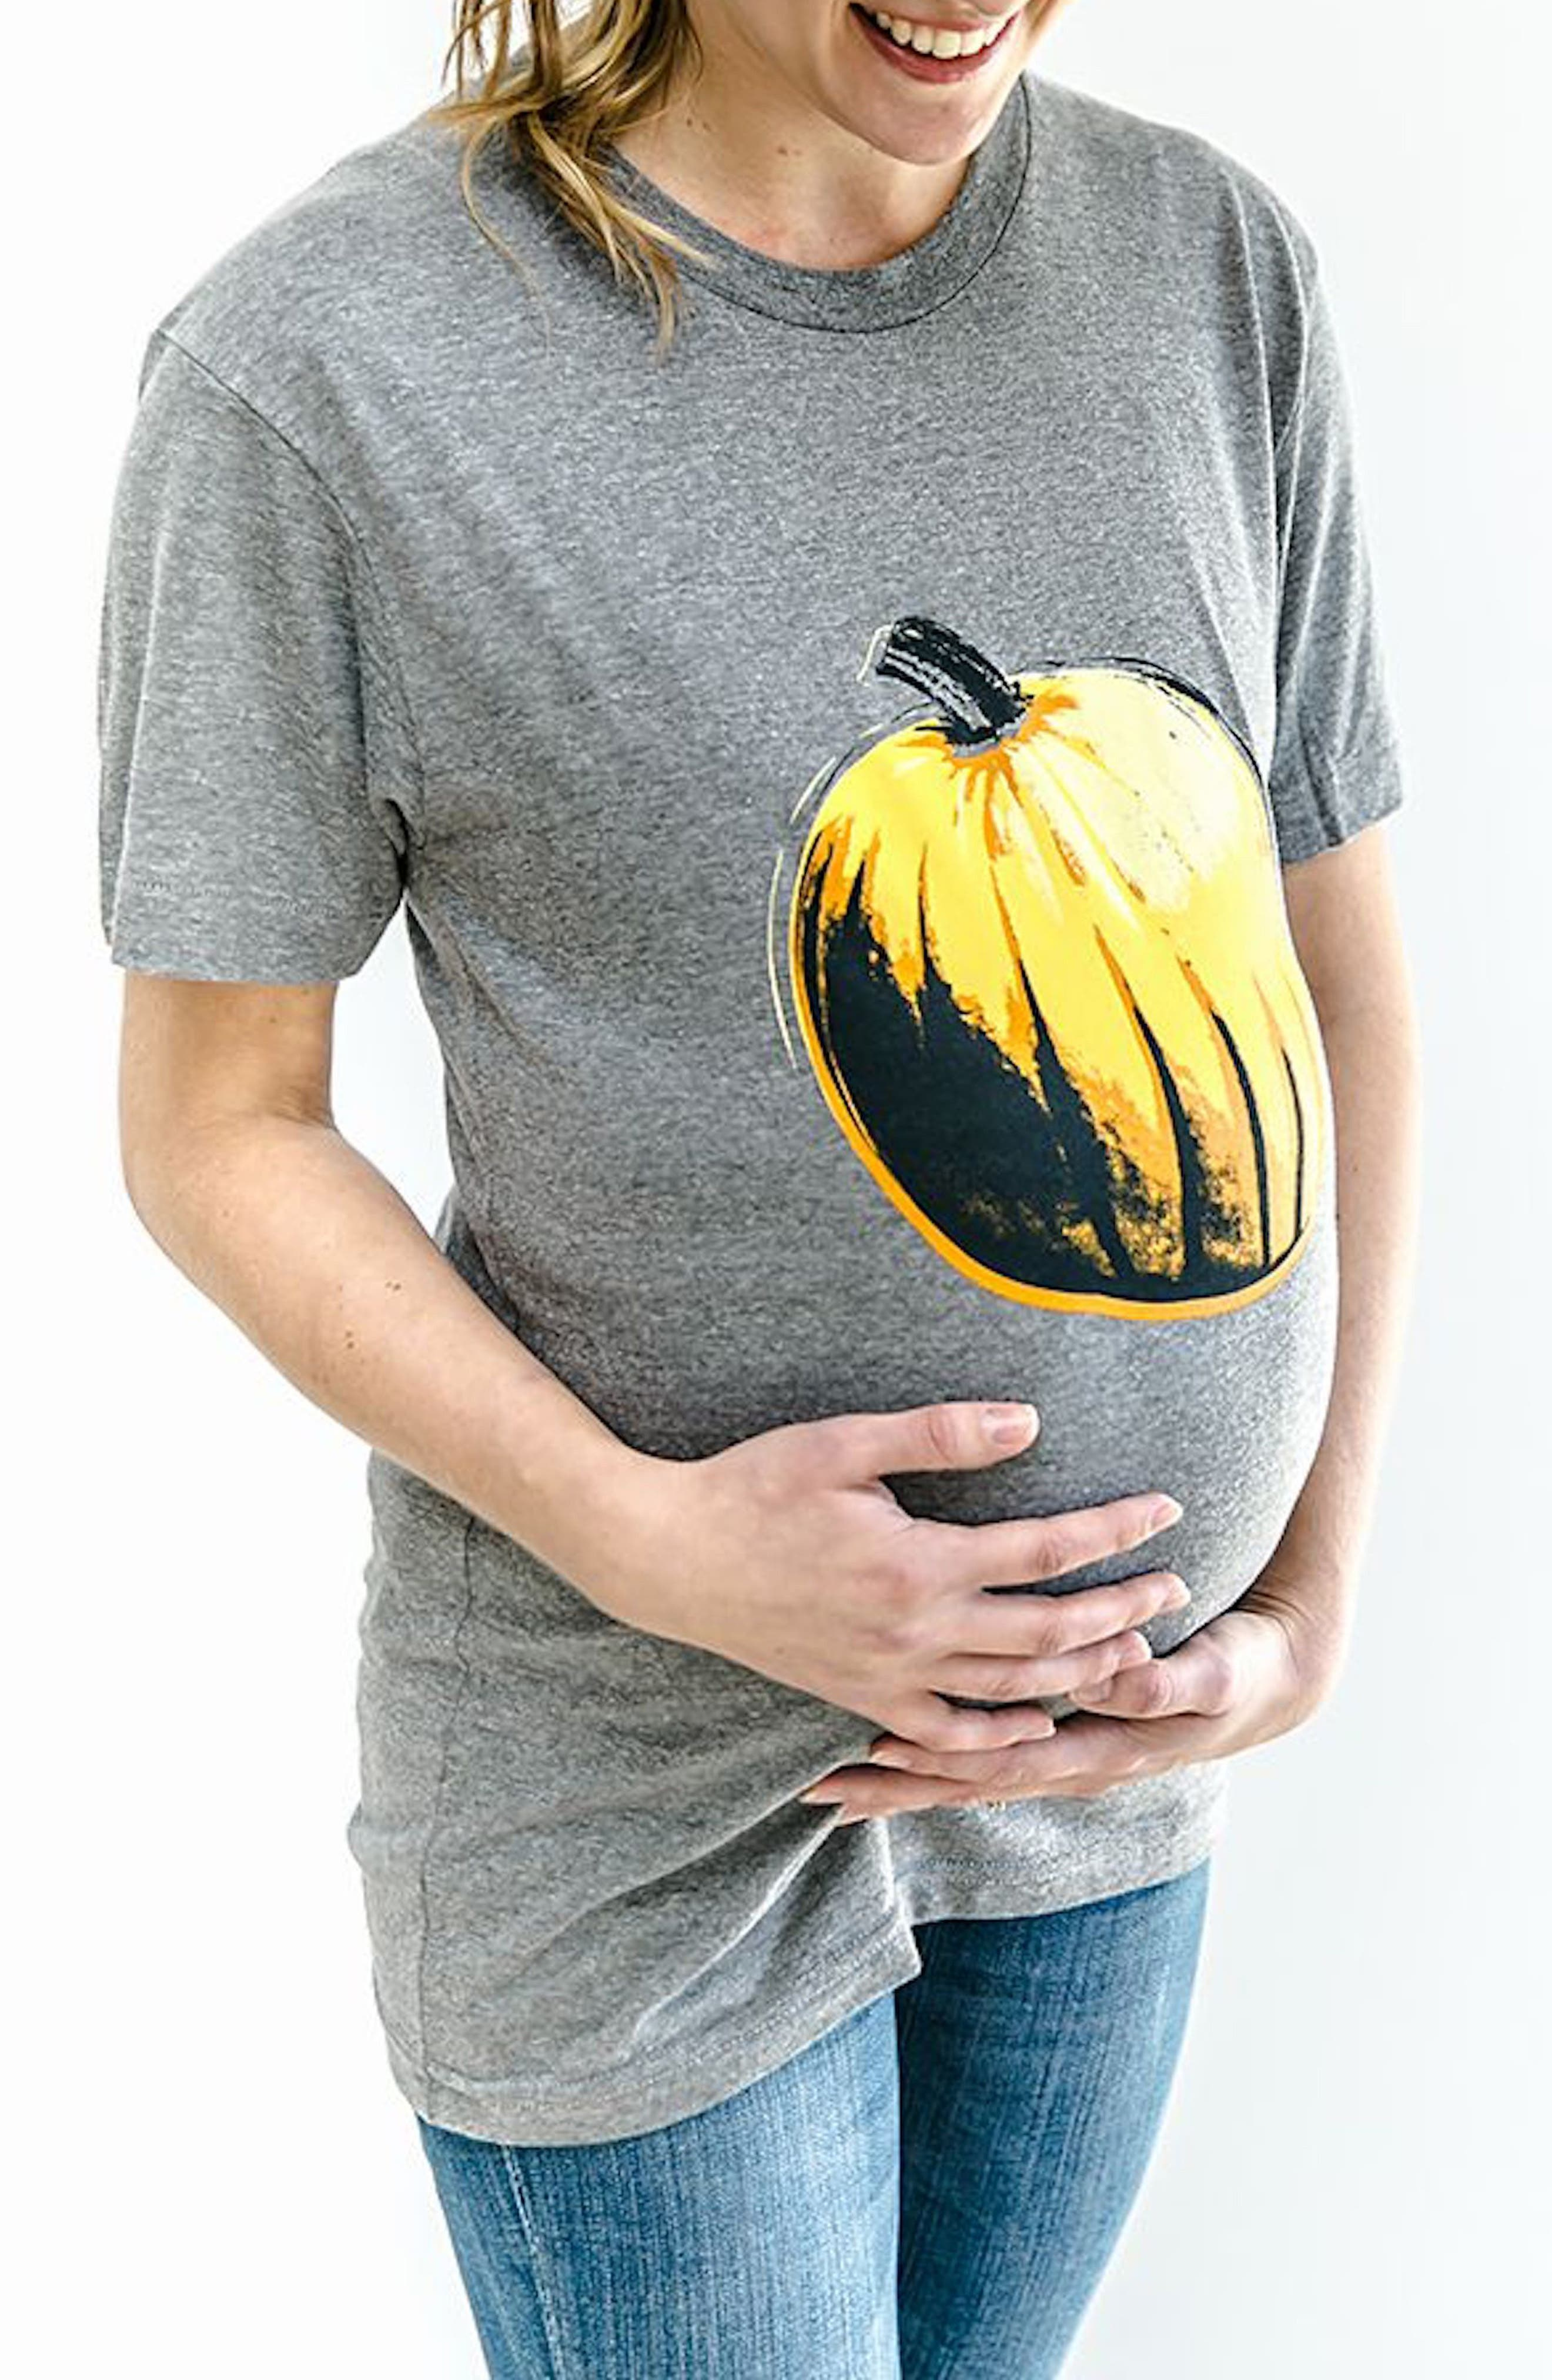 Third Trimester Pumpkin Maternity Tee,                         Main,                         color, 021